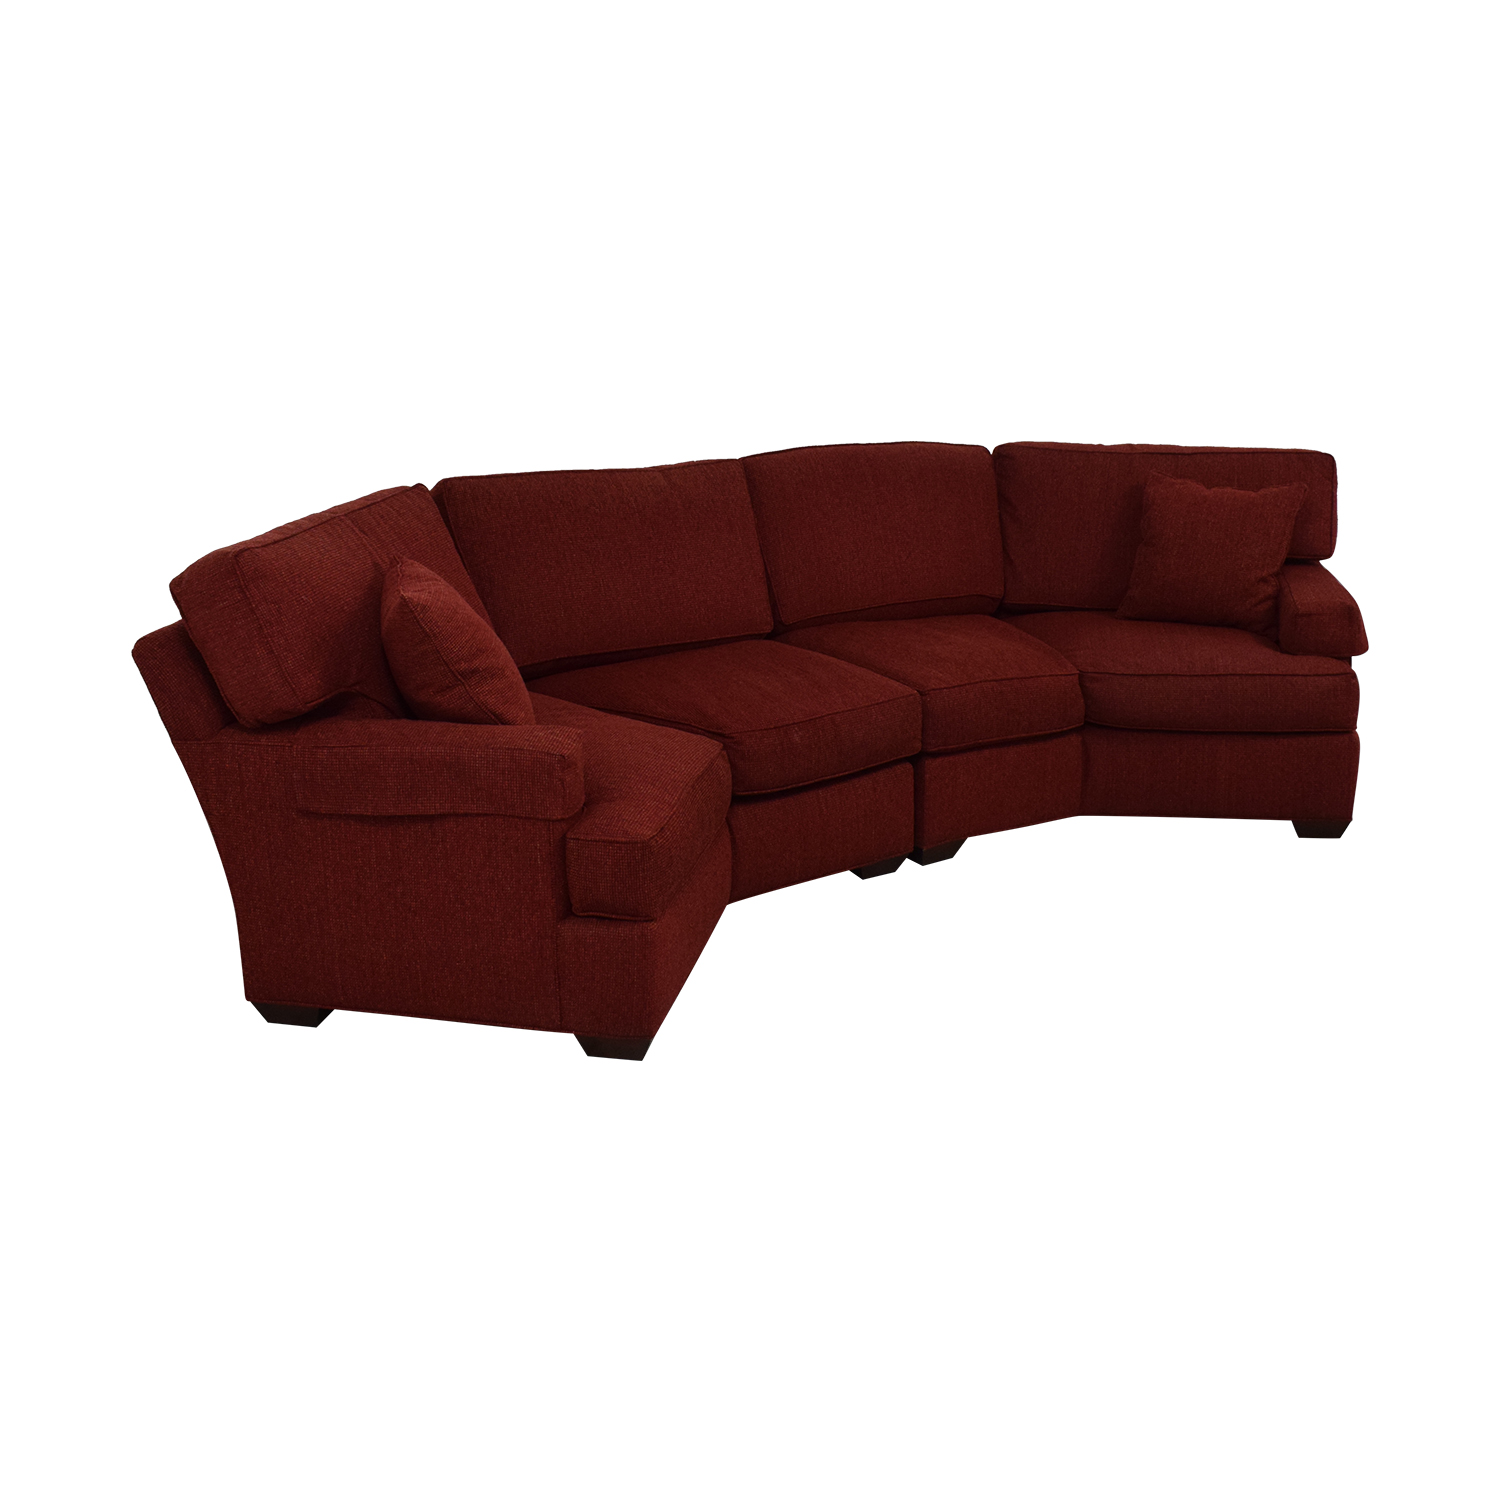 Pearson Red Wedge Sectional Sofa sale